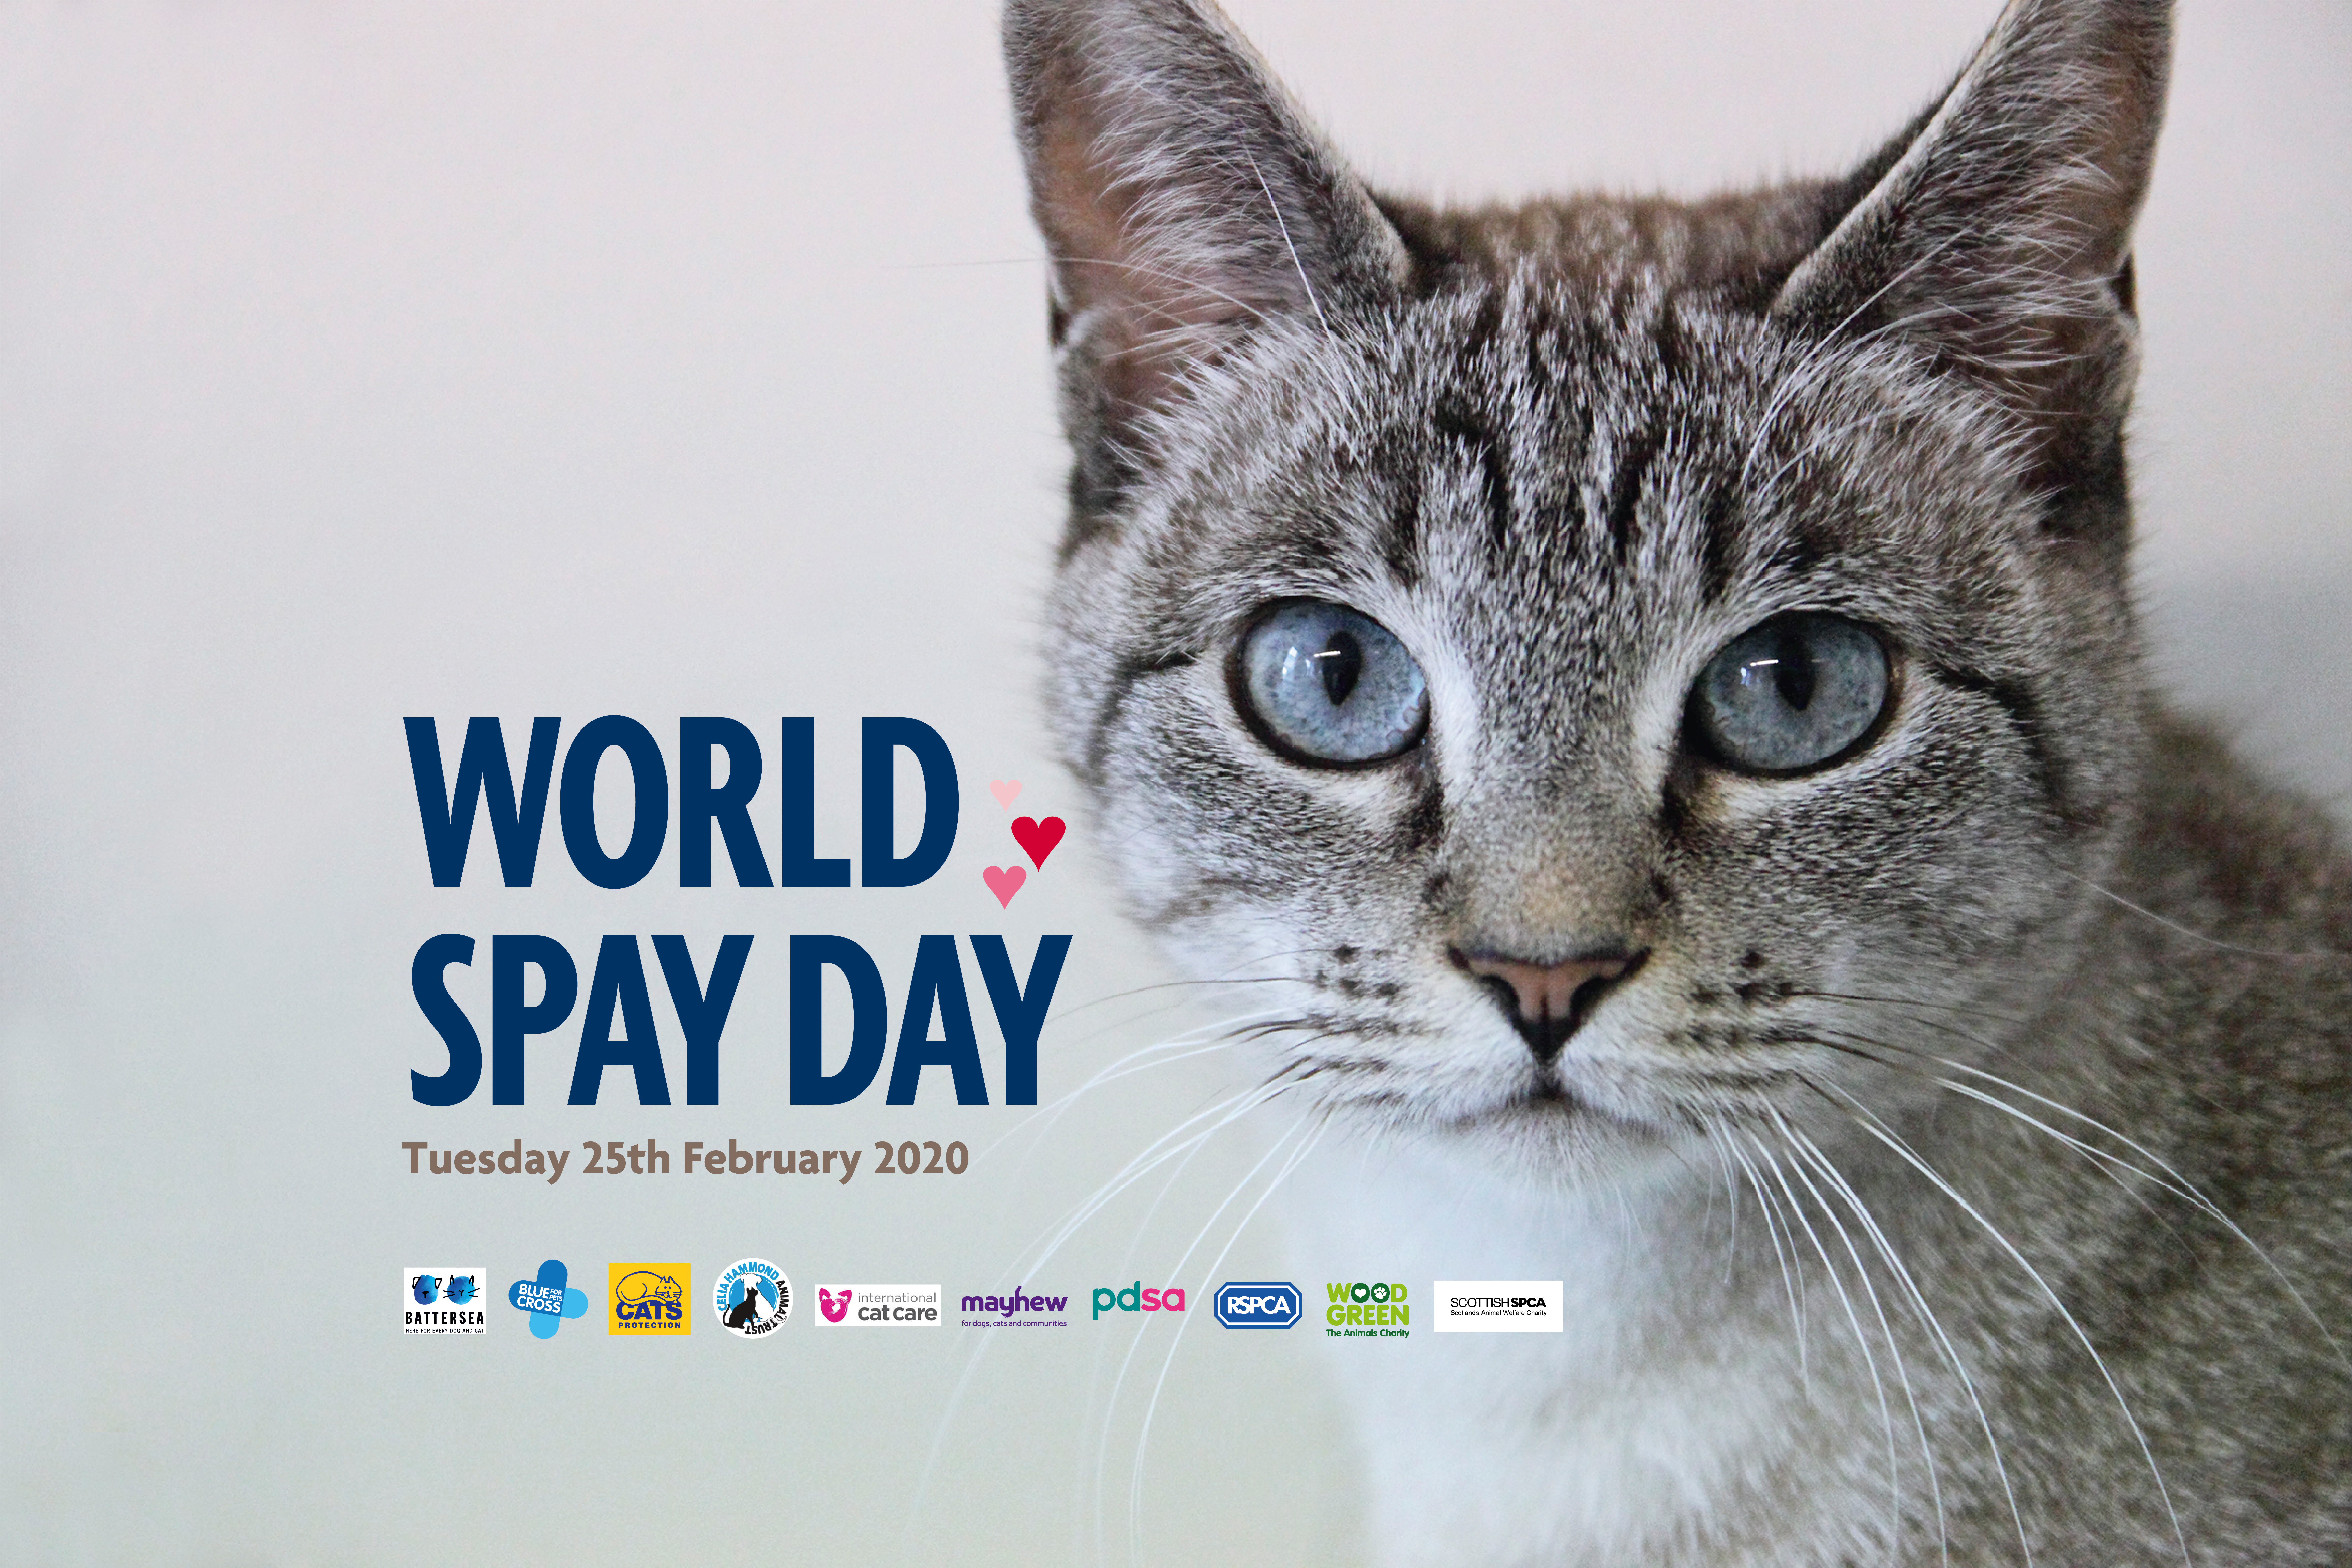 World Spay Day 2020